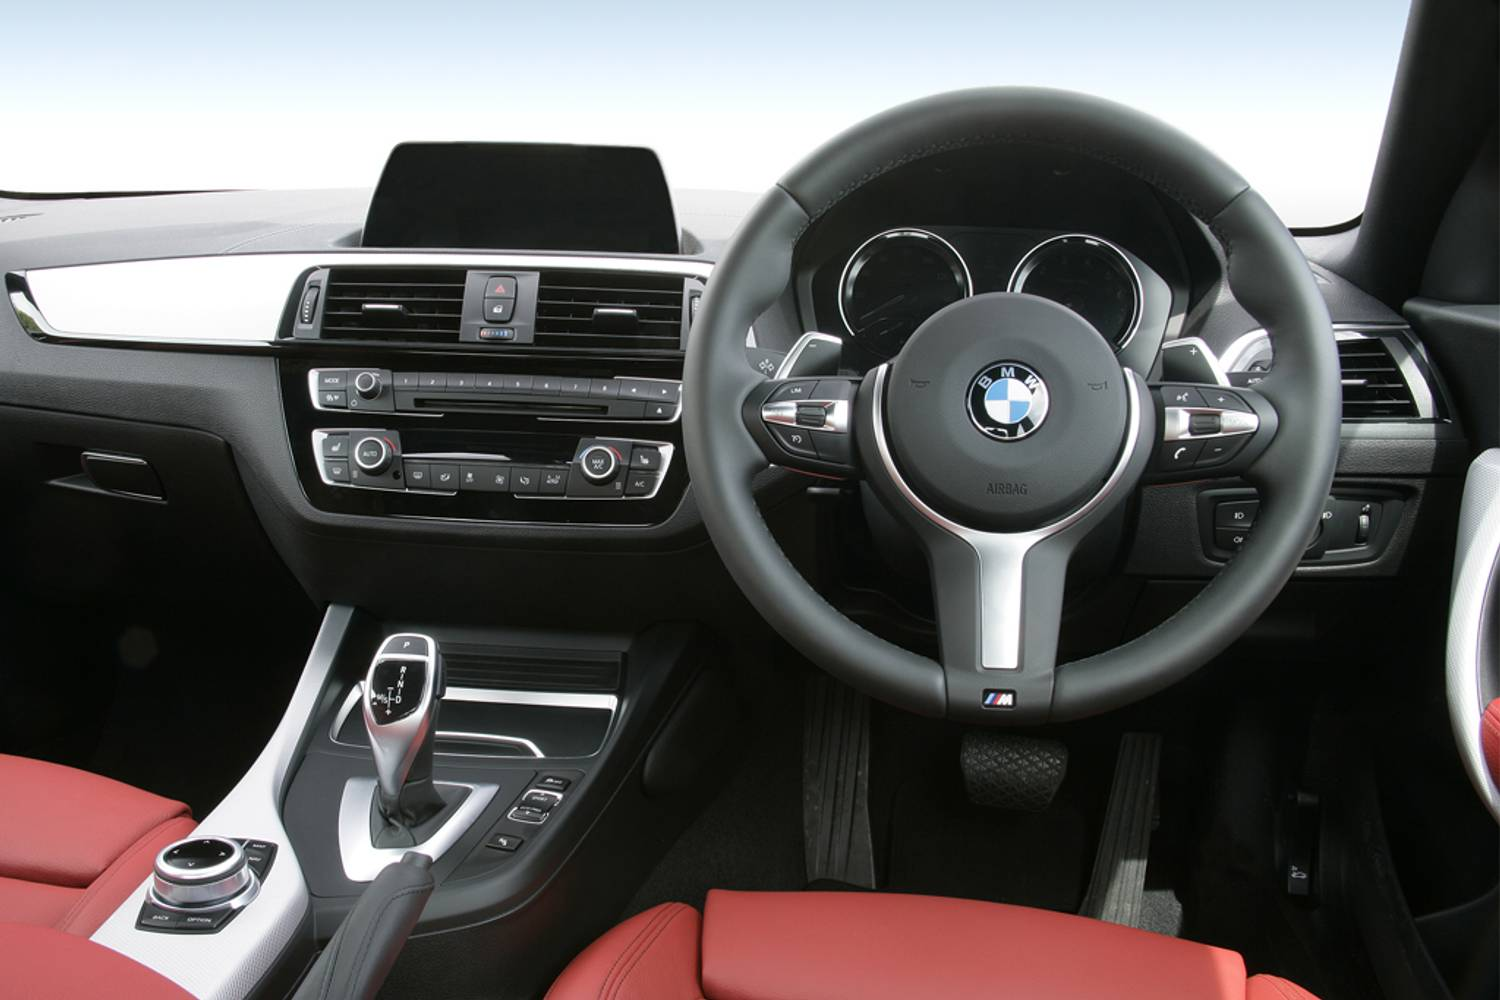 BMW 2 Series Coupe 2dr [Nav] interior